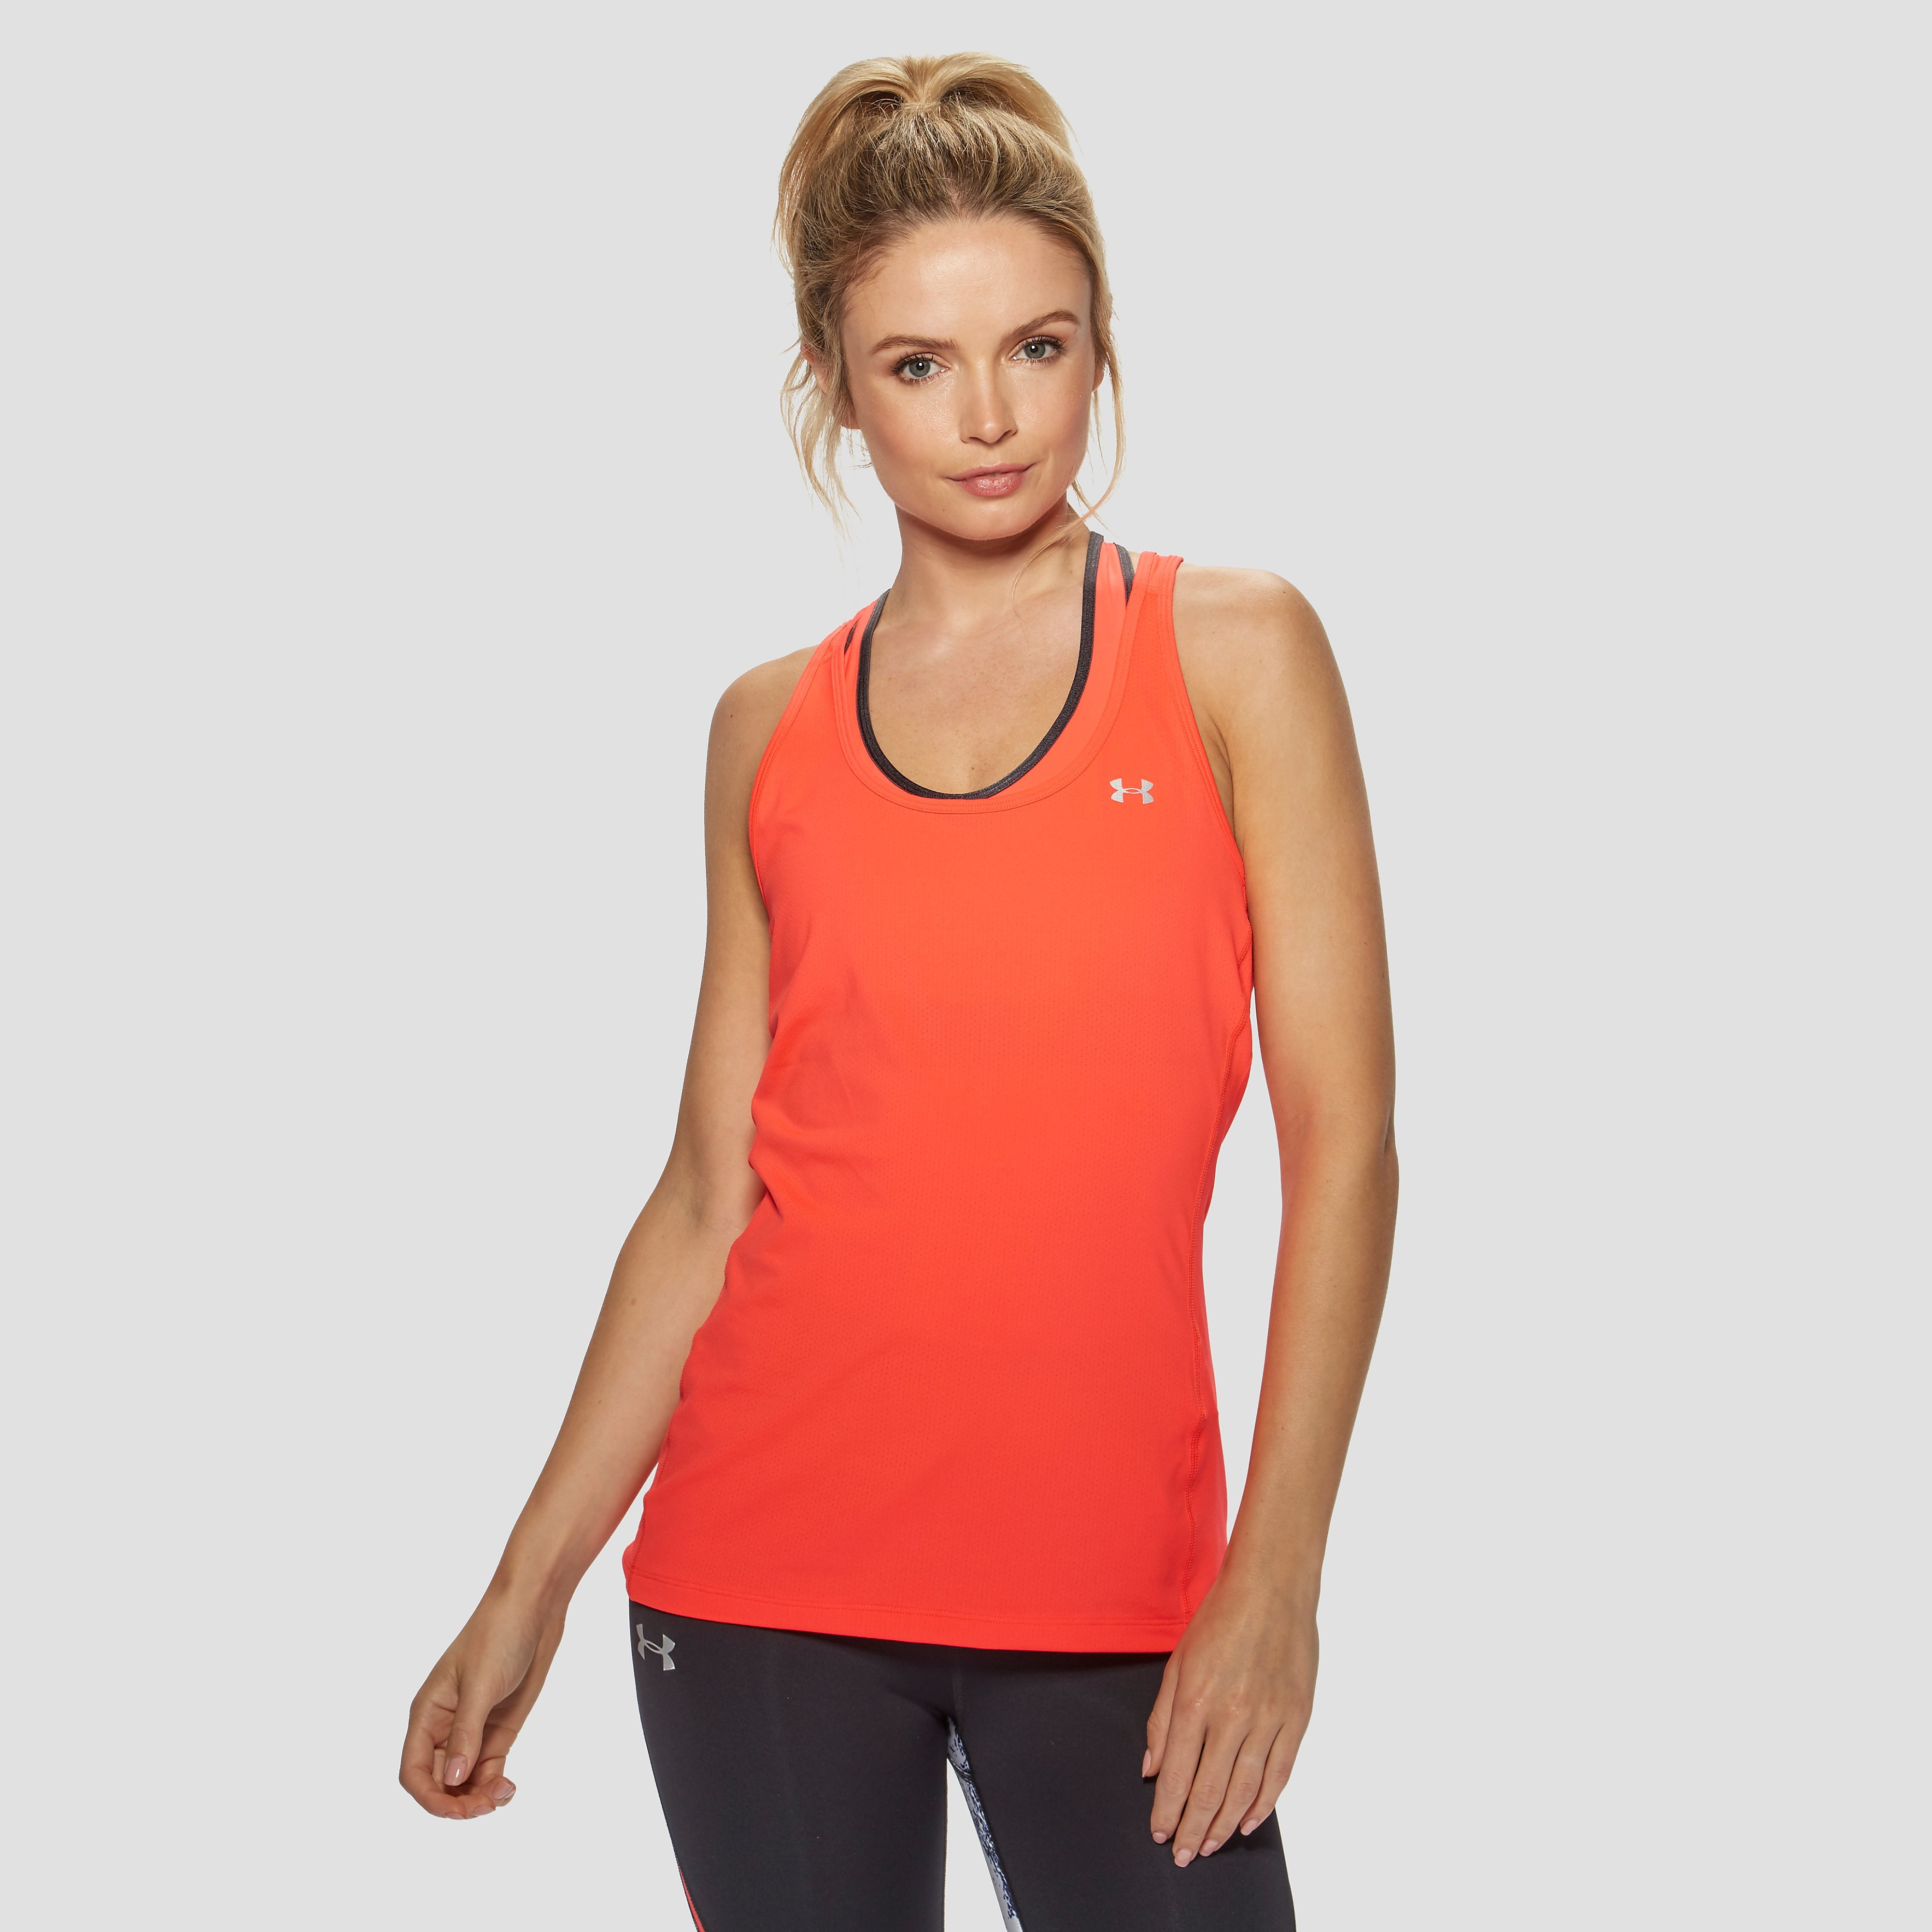 Under Armour Armour Women's Racer Tank Top